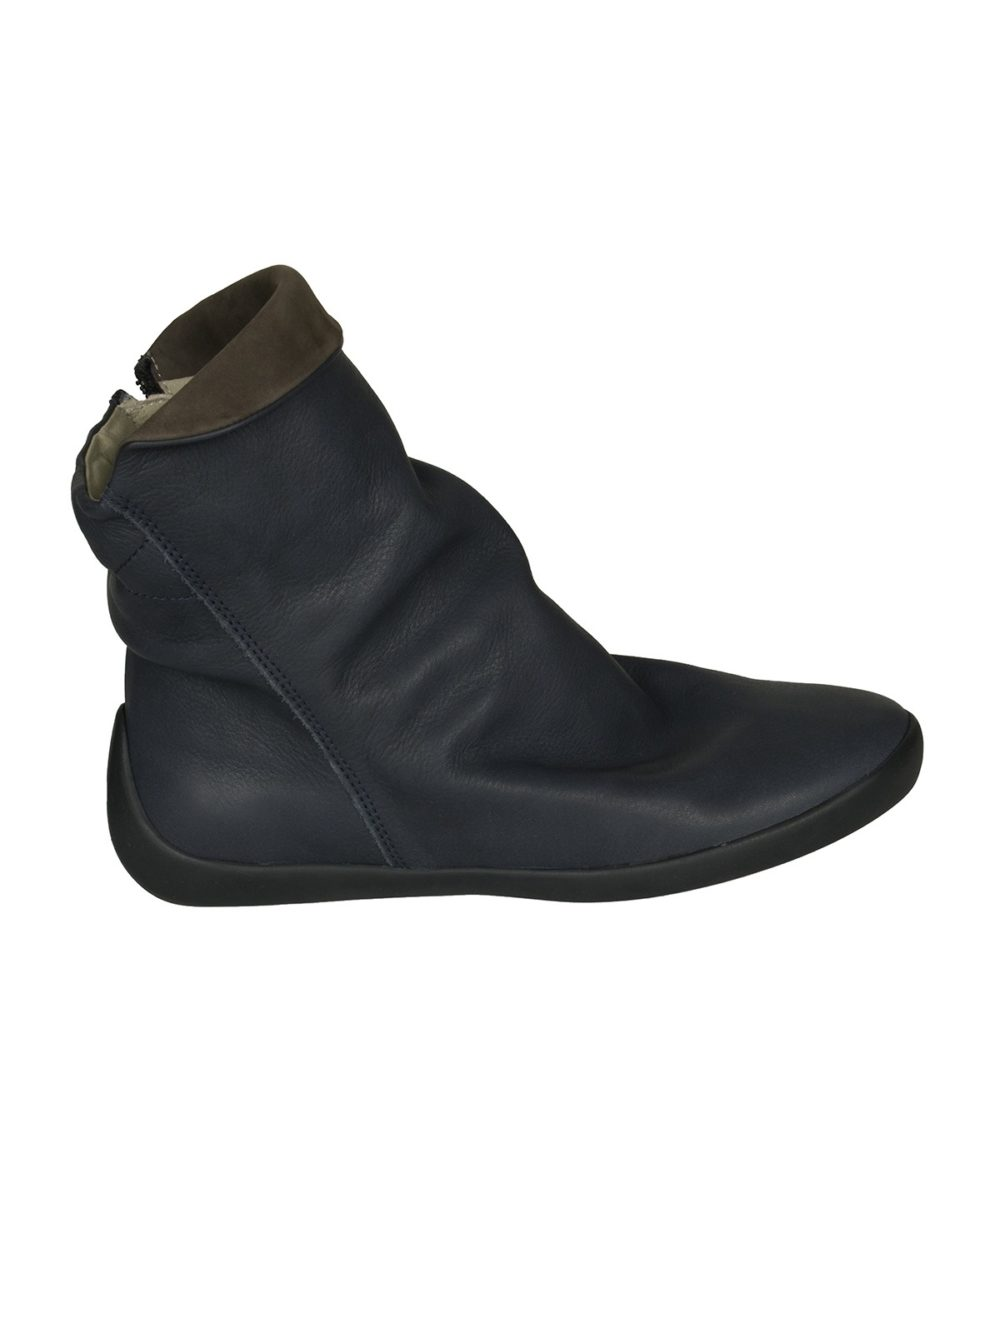 Nat Boot Softinos Katie Kerr Women's Clothing Women's Boots